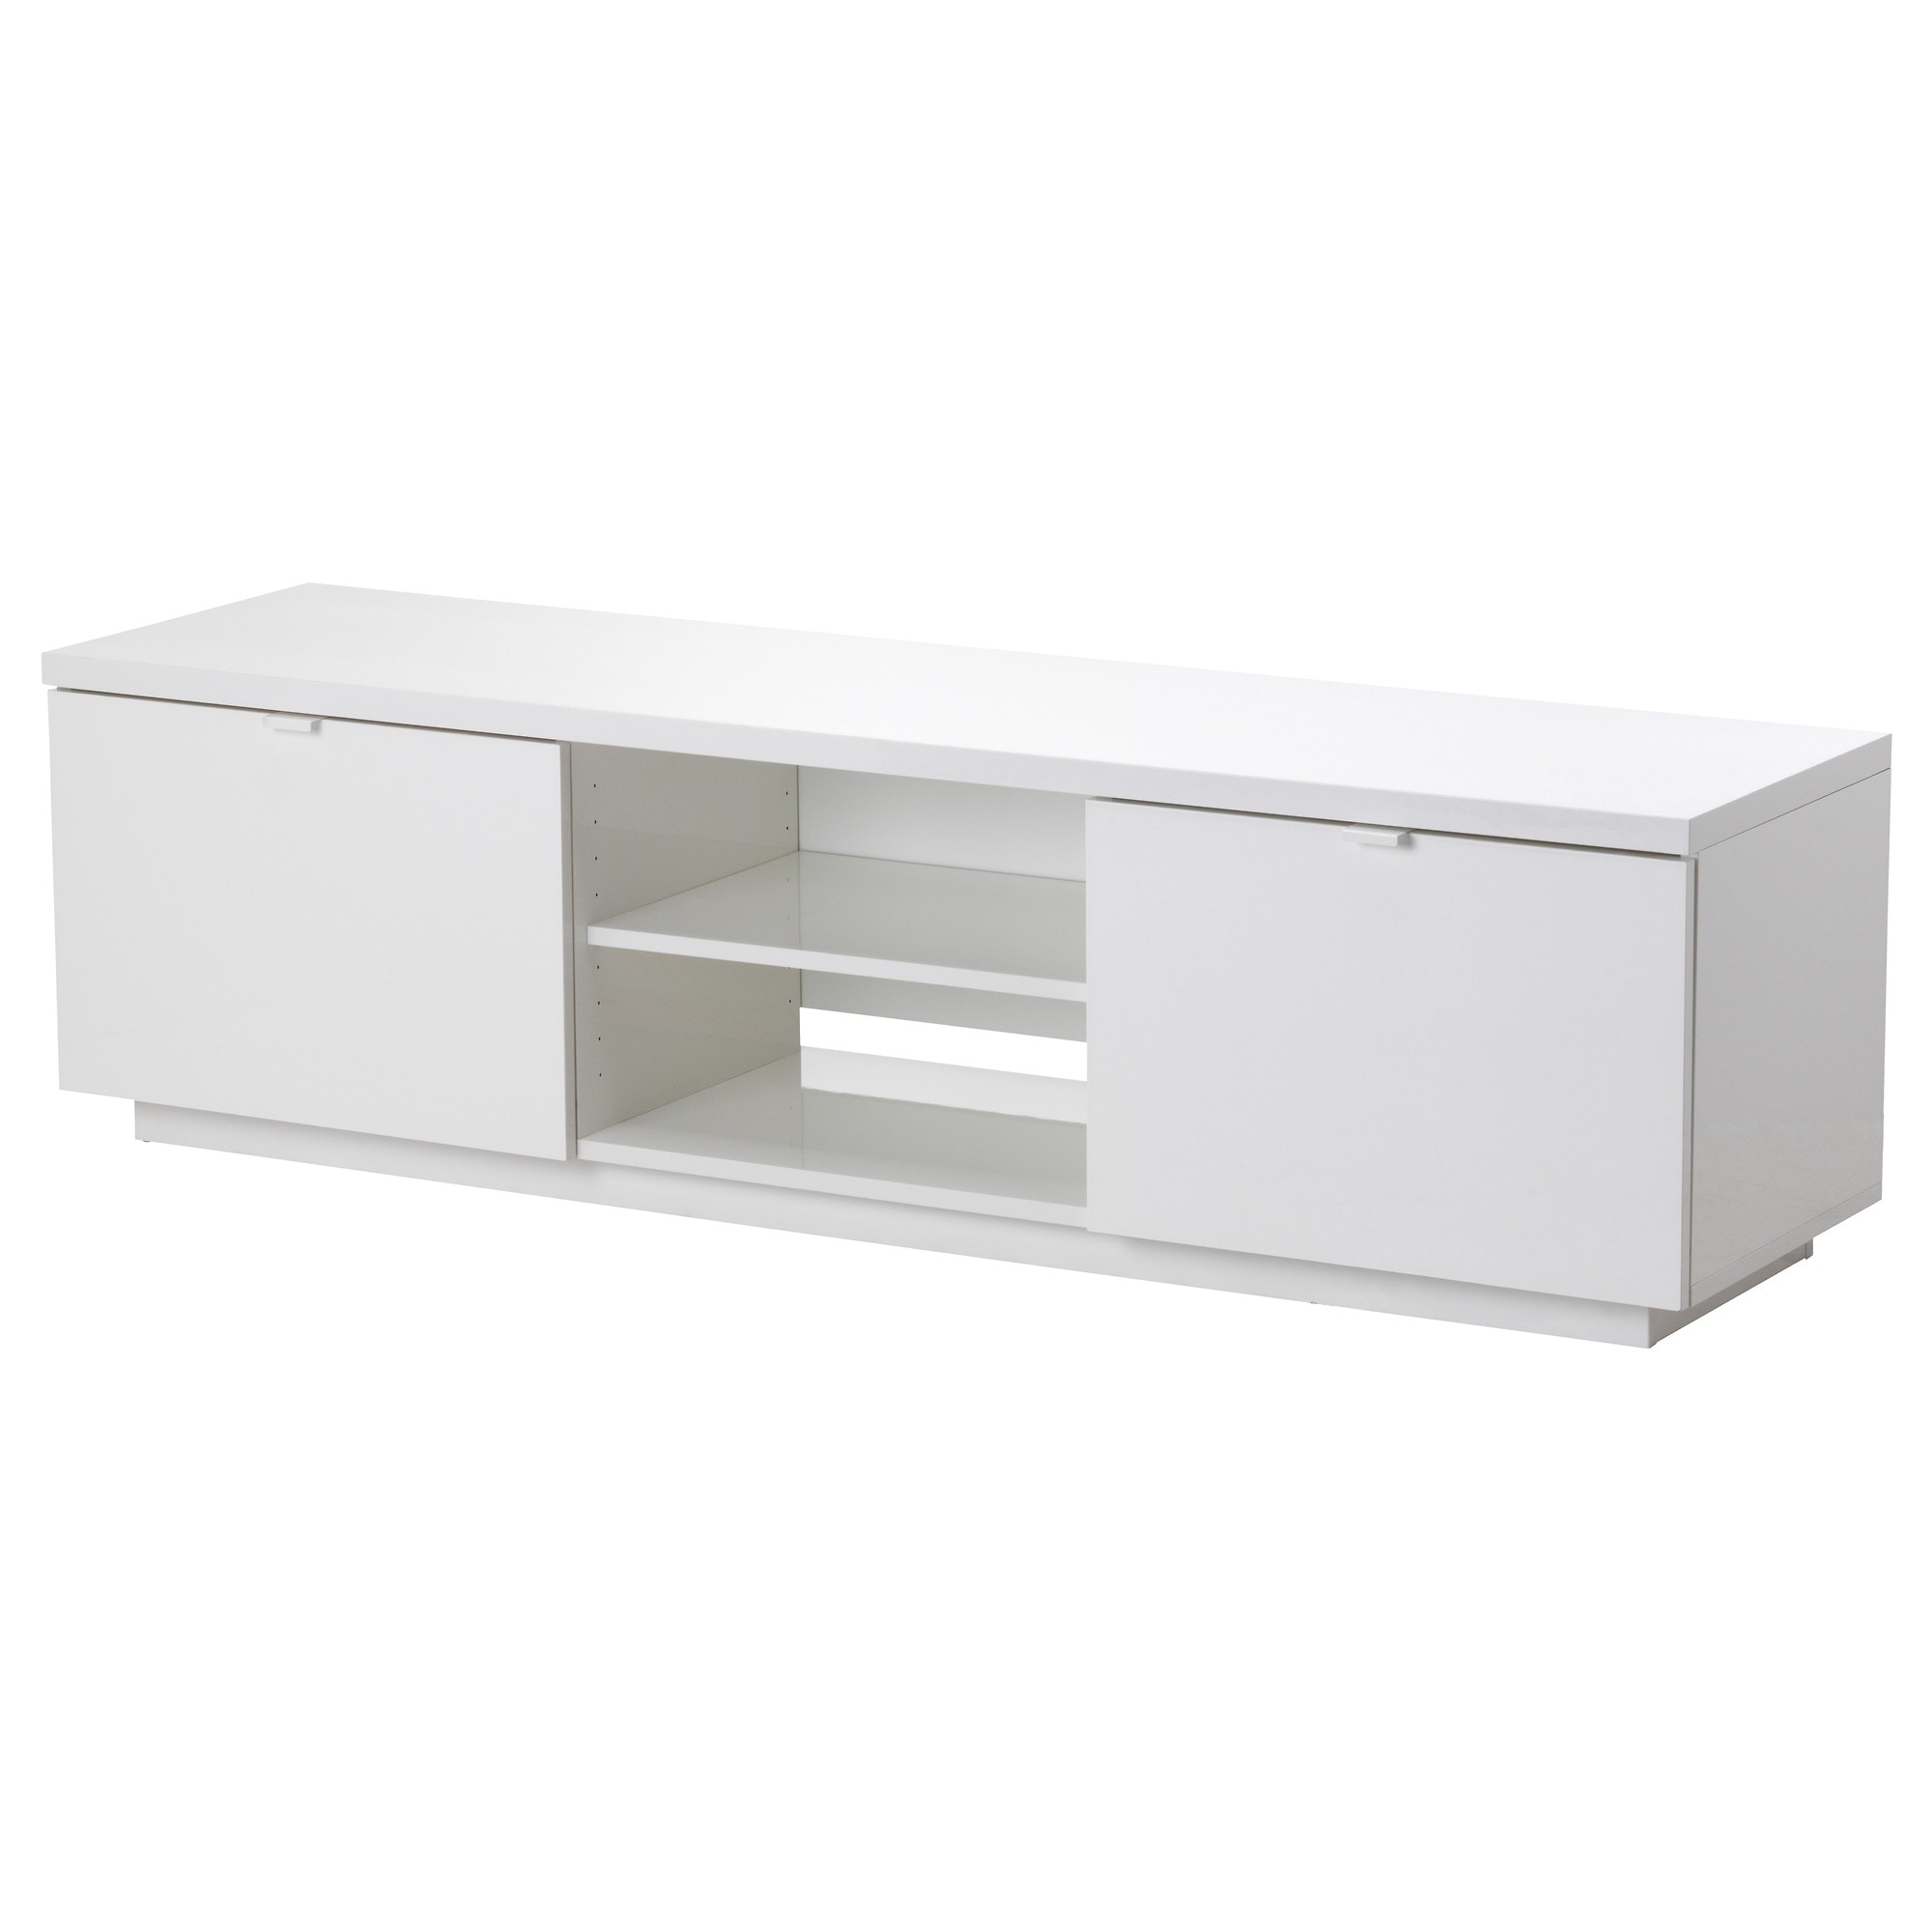 TV Media Furniture – TV Stands, Cabinets & Media Storage - IKEA